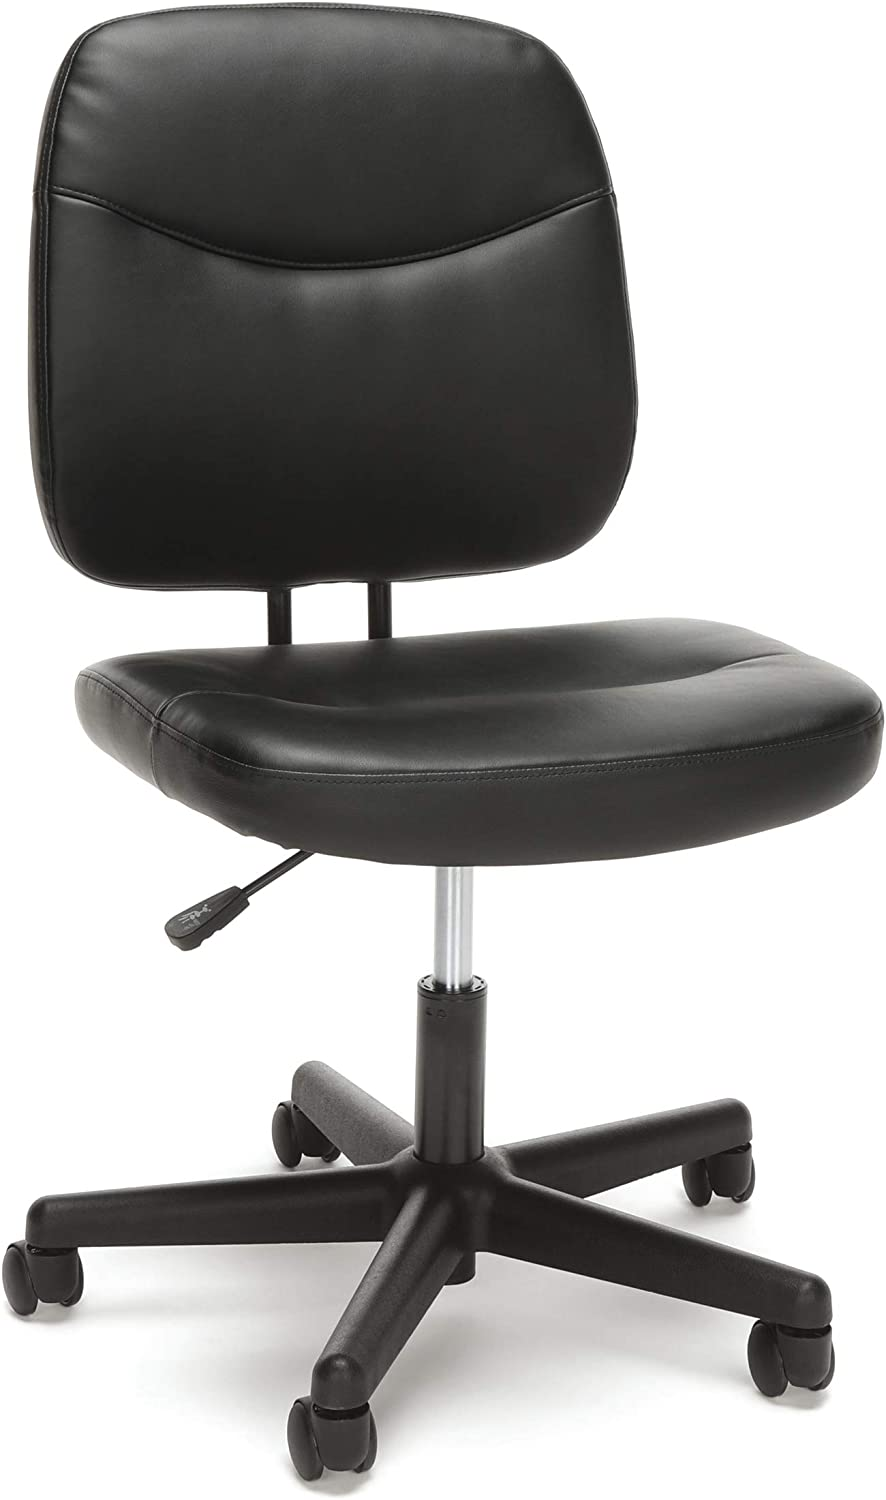 OFM Essentials Armless Leather Desk Chair – A quality office chair that comes with a lifetime warranty